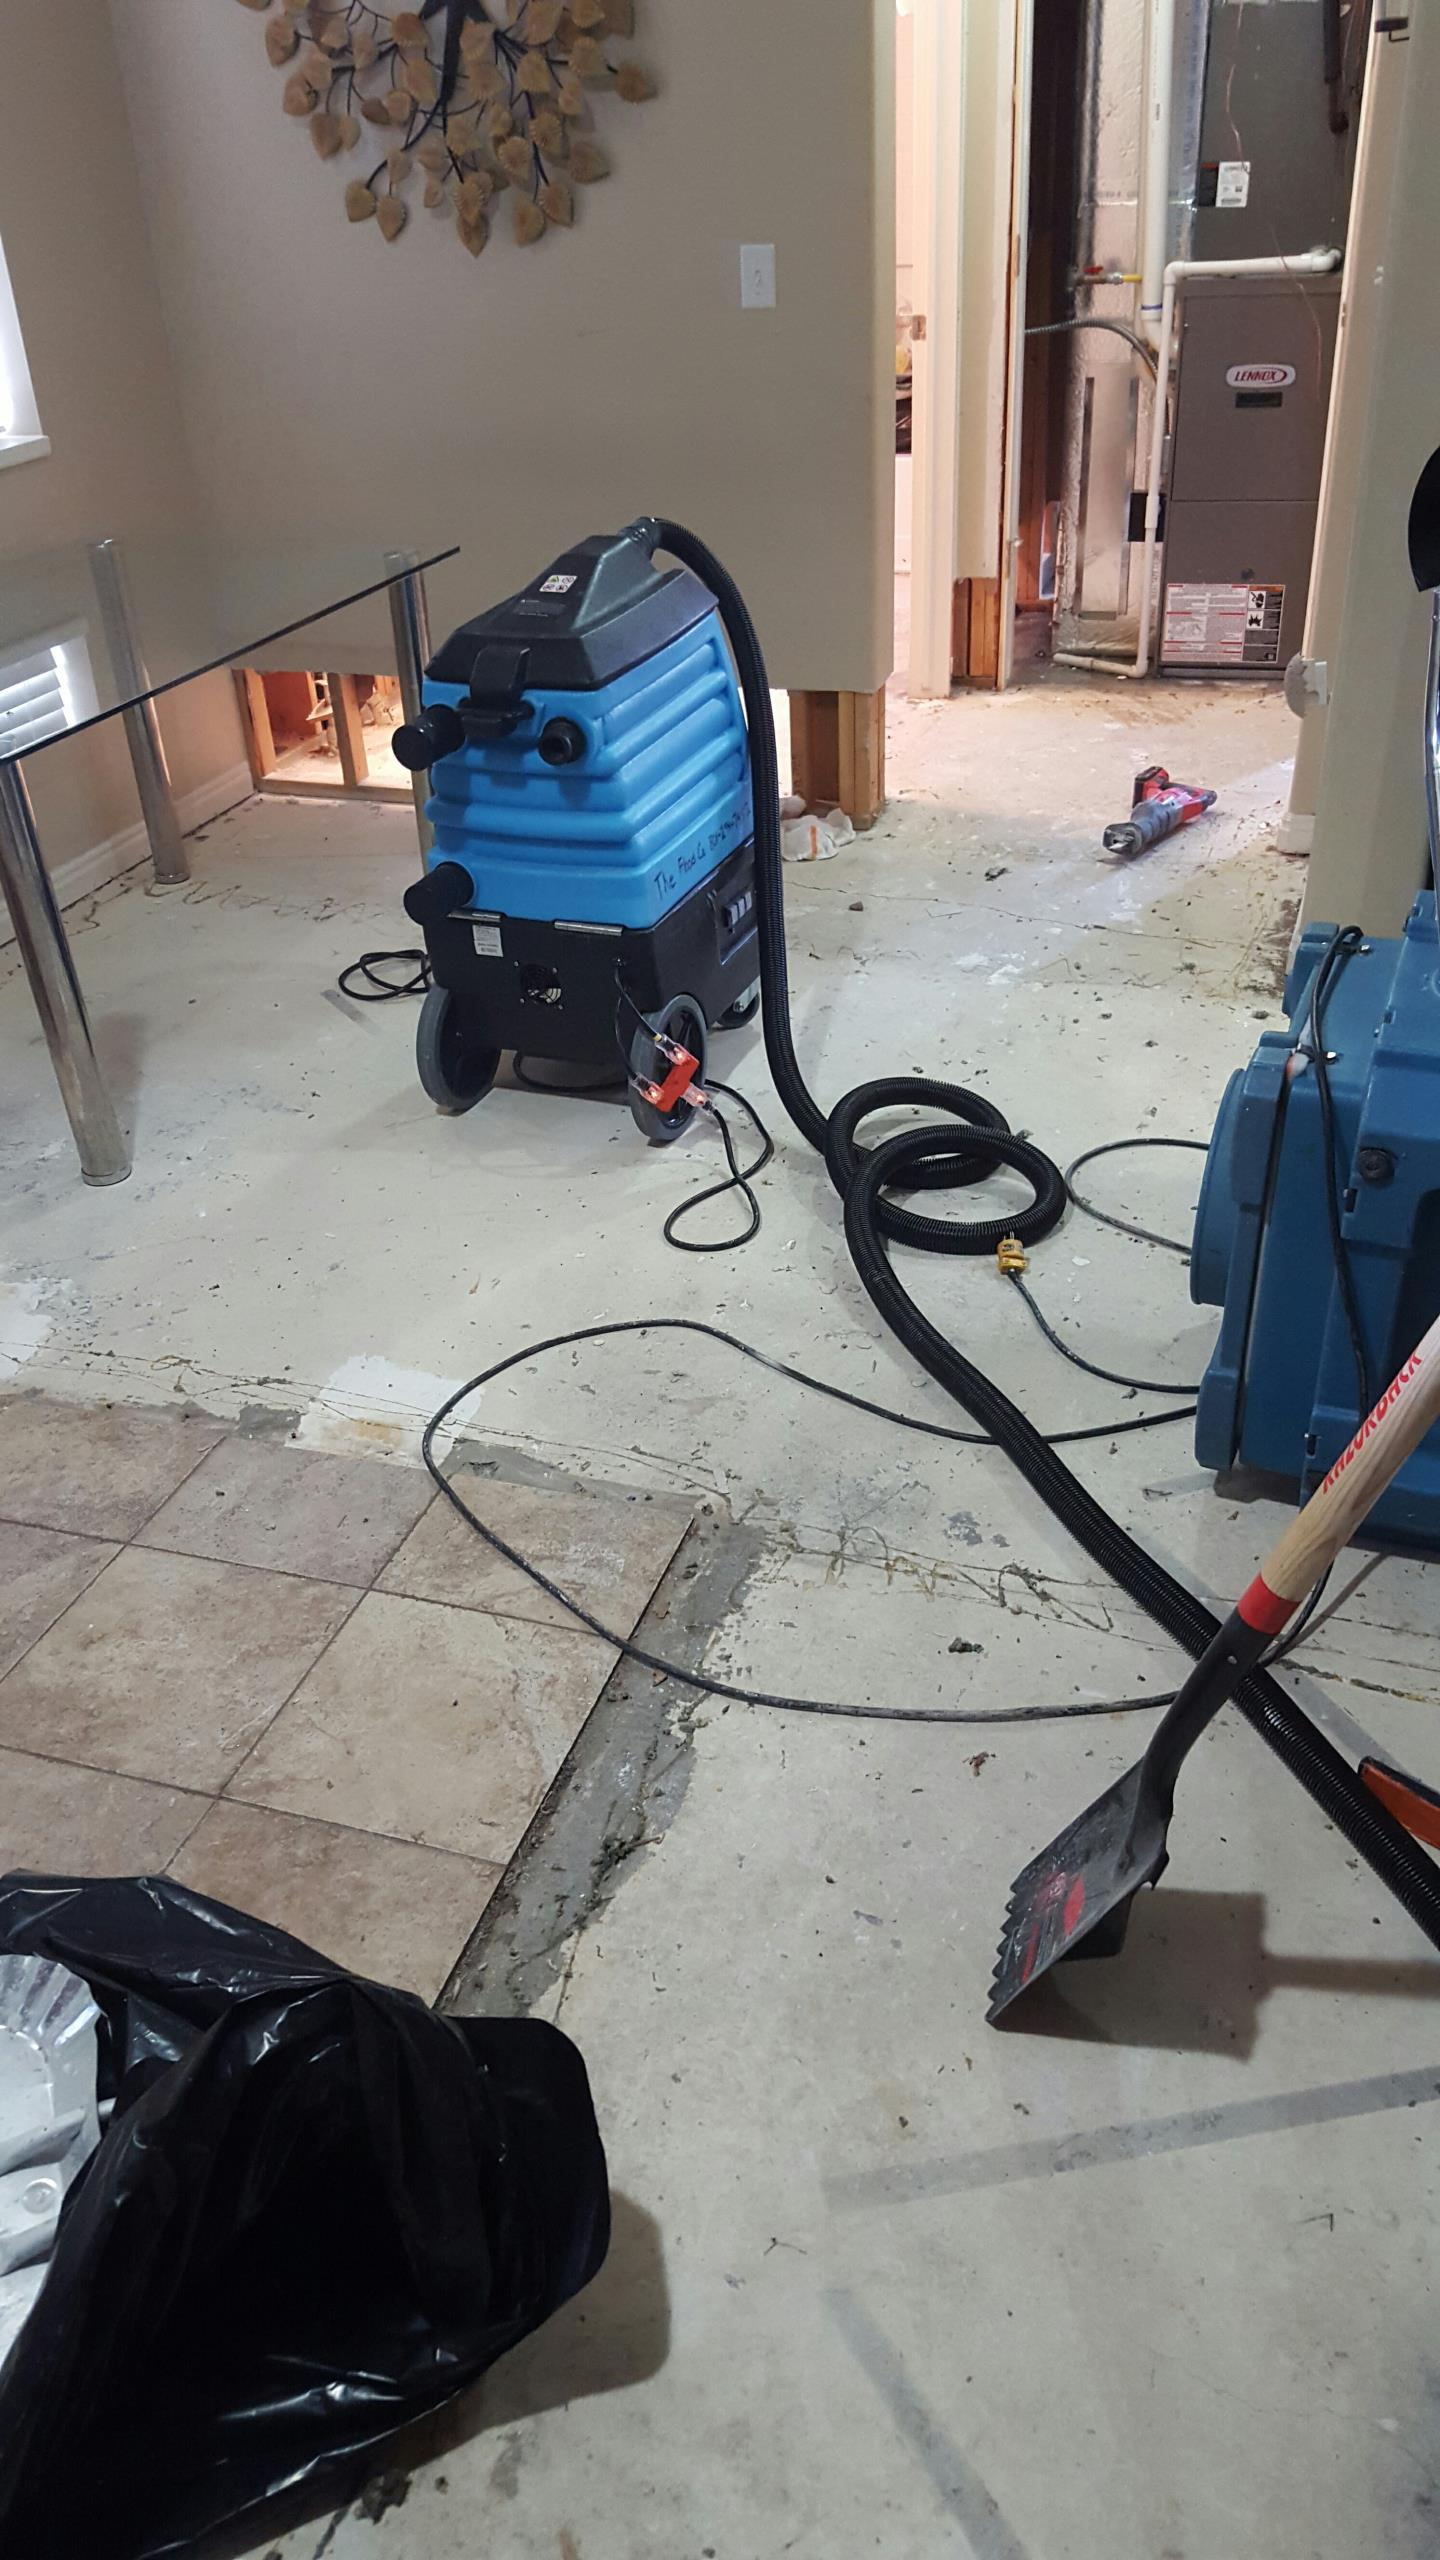 North Salt Lake, UT - Water damage from a sewer backup in North Salt Lake. Carpet was removed and drywall cuts were made to prevent mold growth.